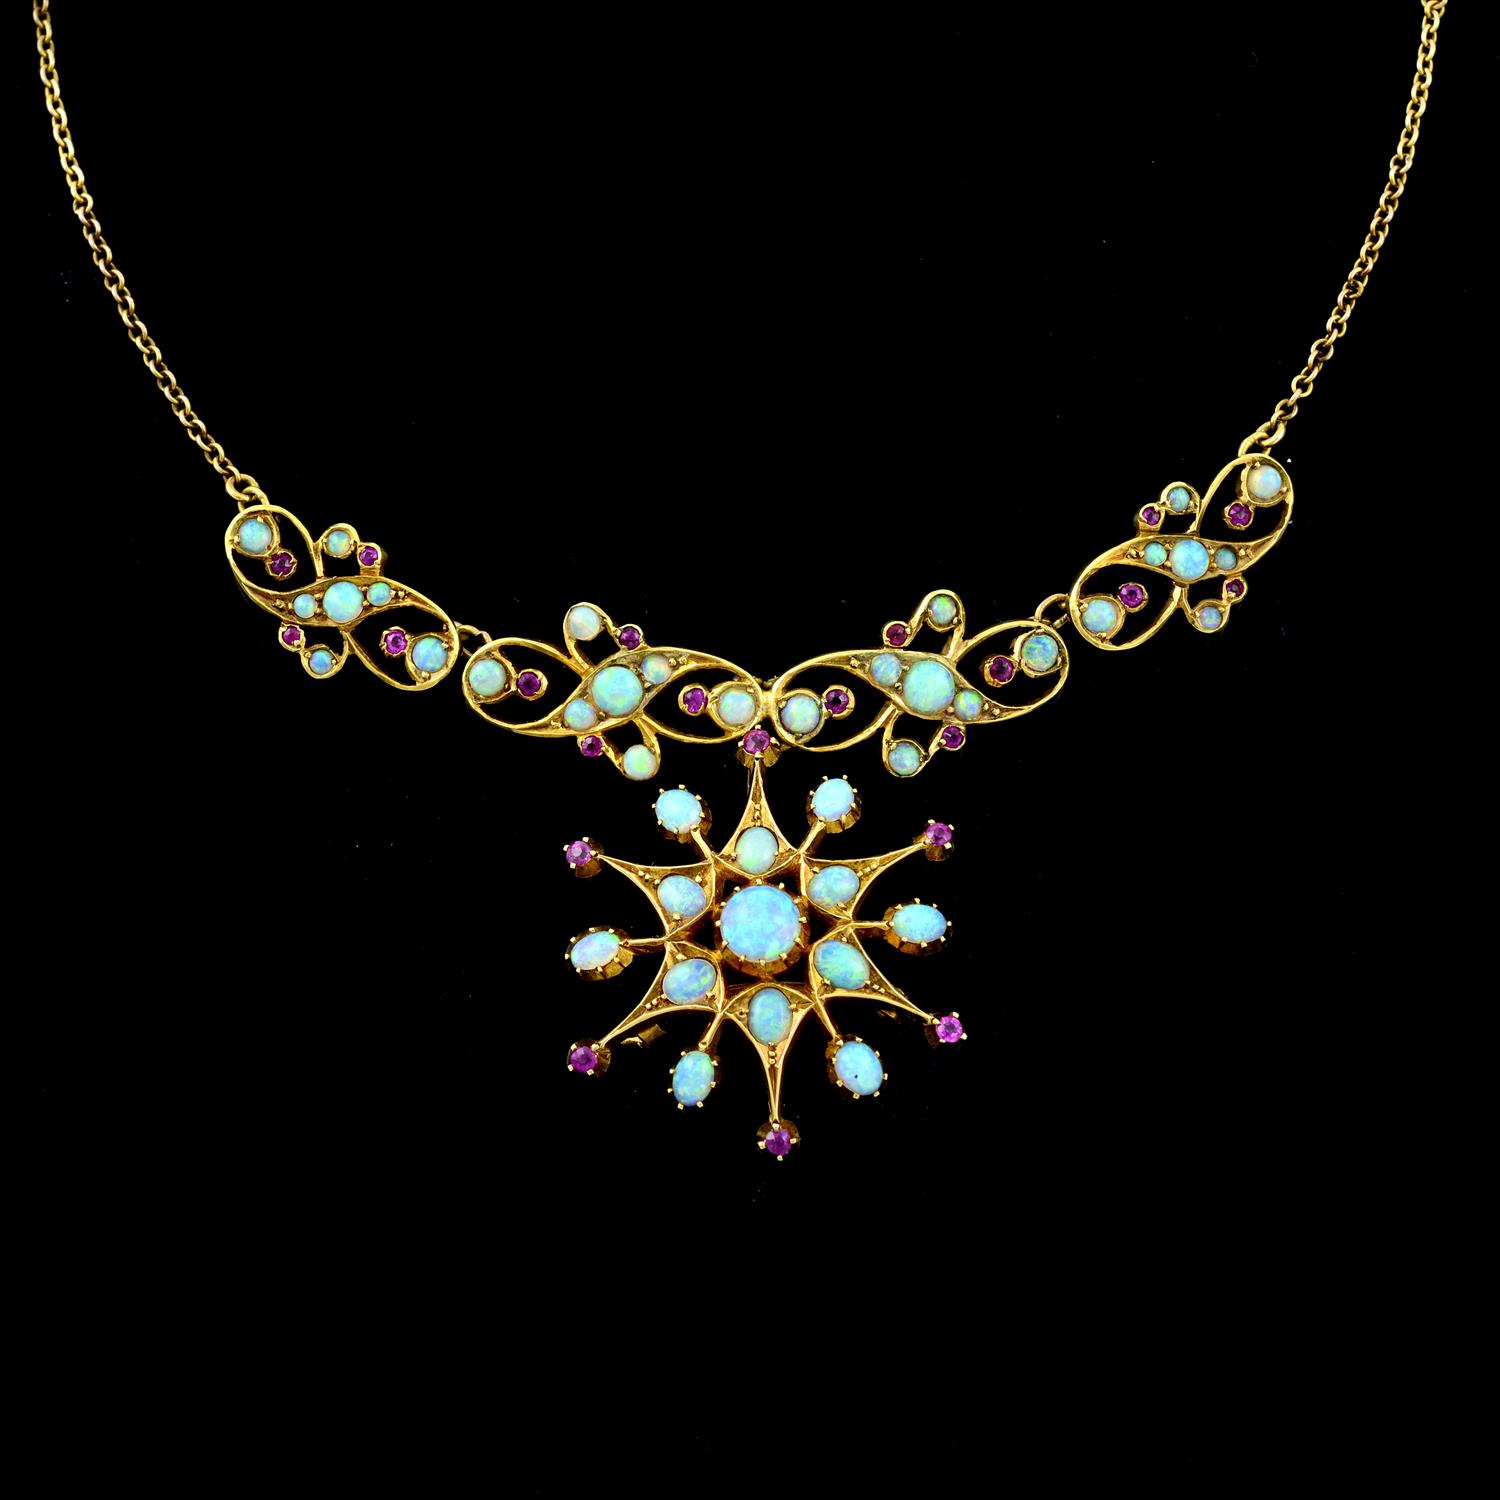 An early 20th century 15ct gold opal and ruby necklace. - Image 2 of 5